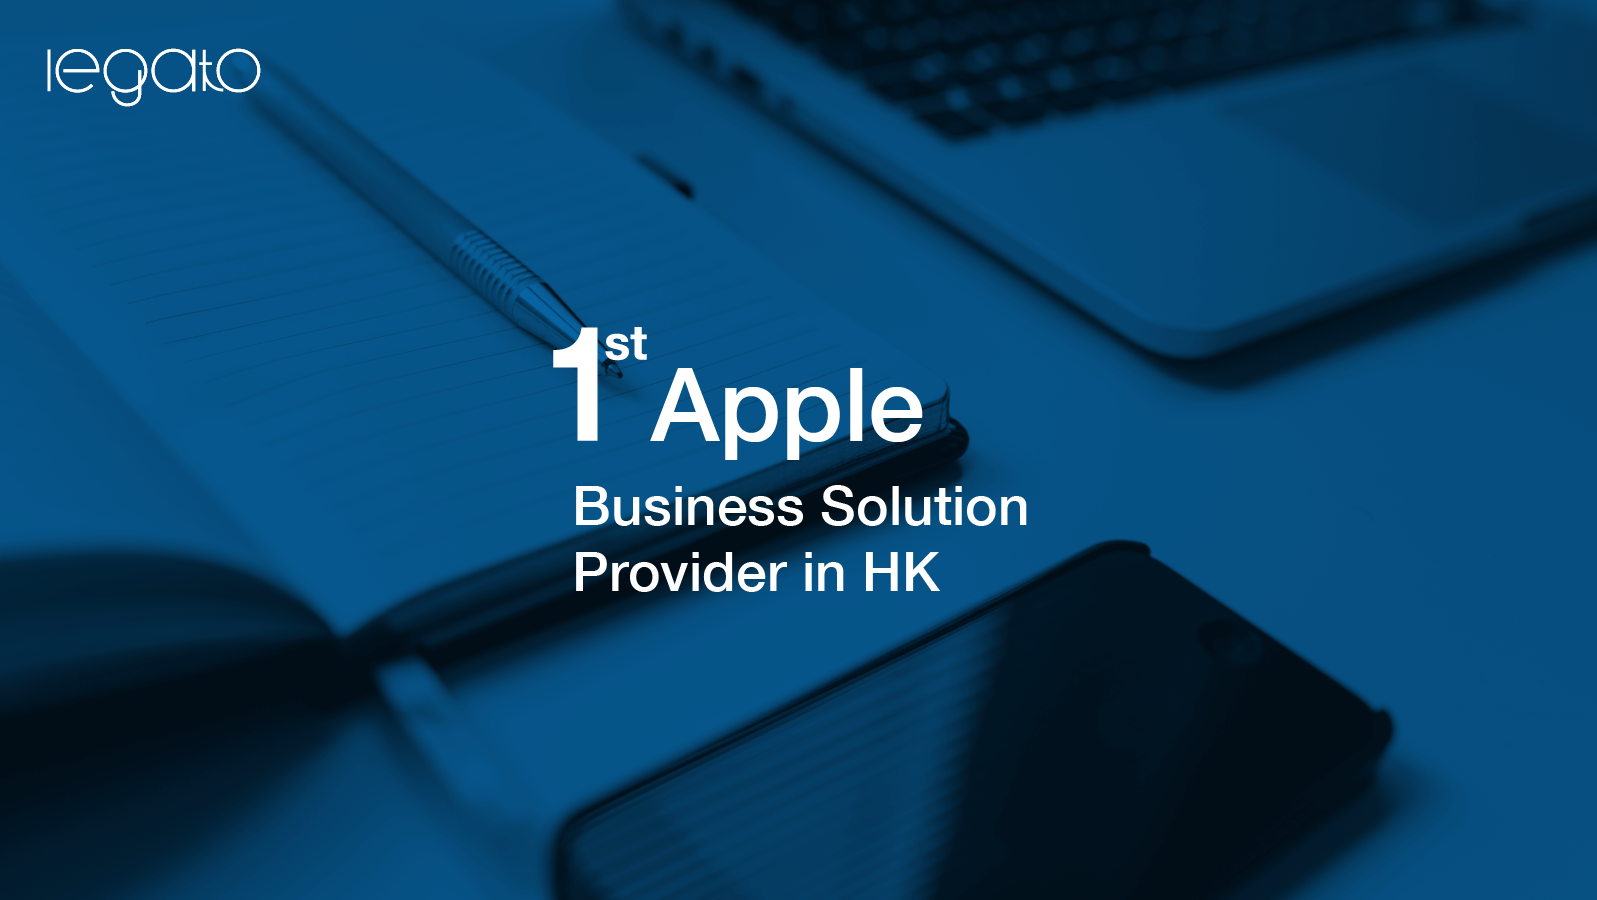 Legato - 1st Apple Business Solution Provider in Hong Kong